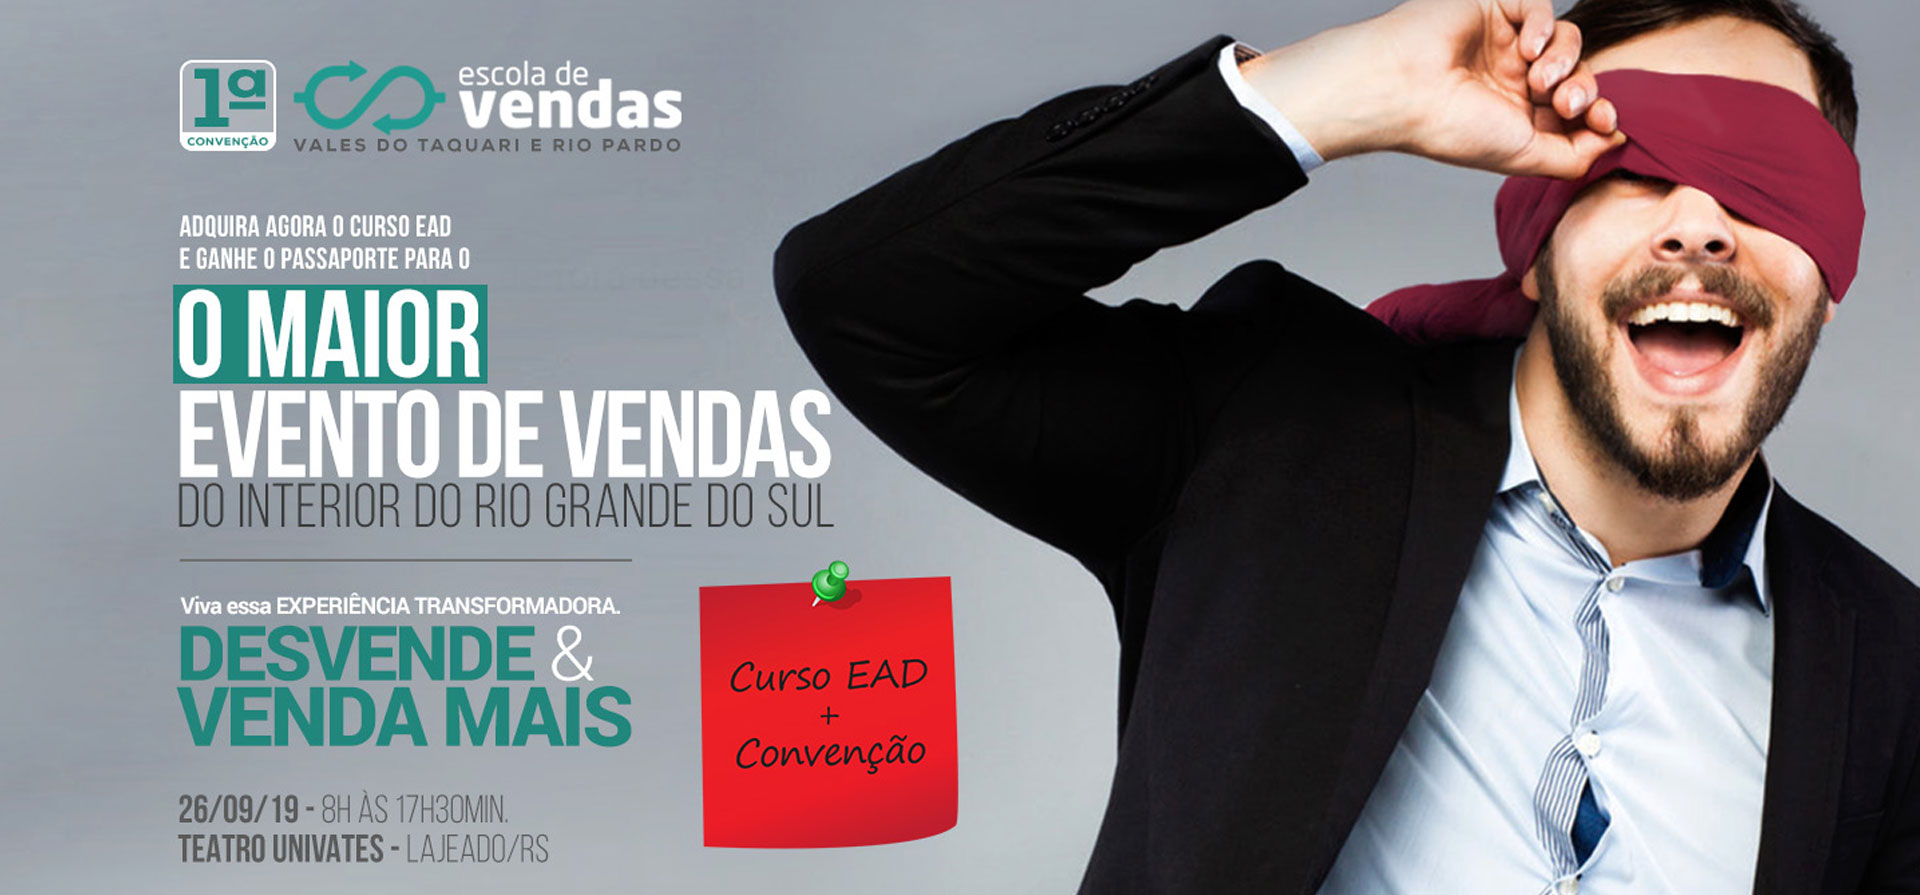 Escola de Vendas - Evento